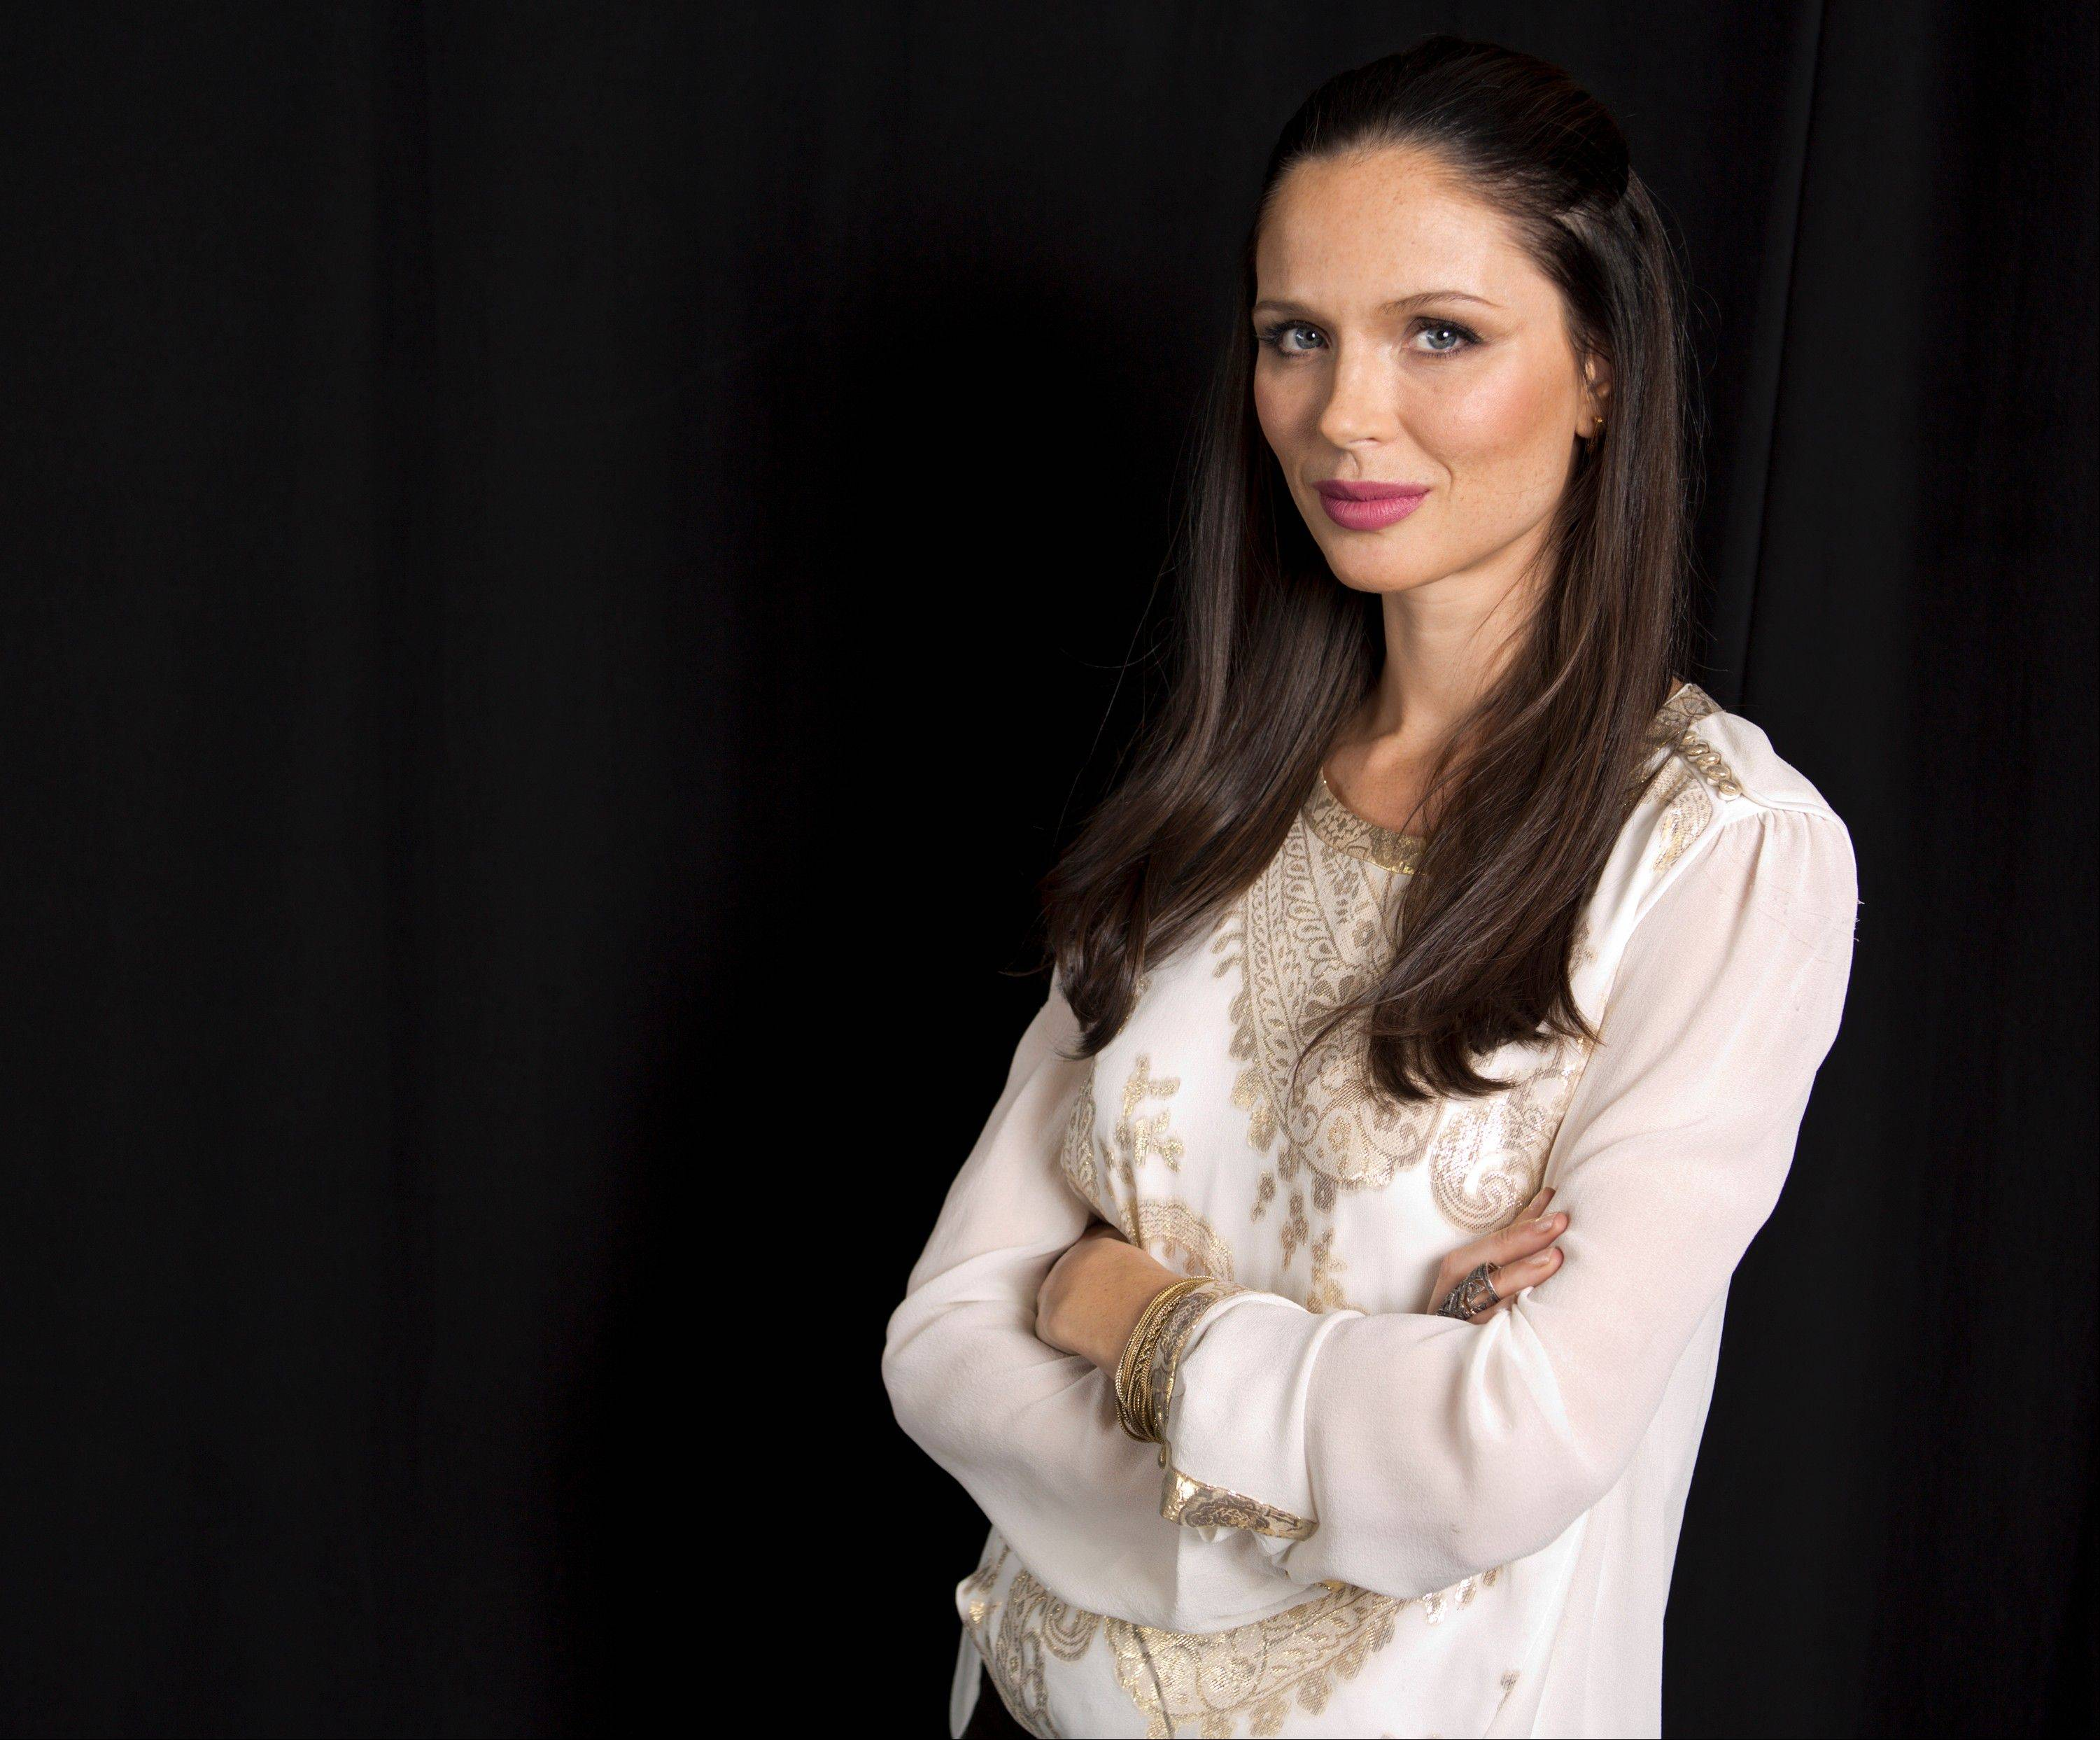 Fashion designer Georgina Chapman studied costume design with the intent of one day dressing actors in their movies. Her career took a slight turn when she and partner Keren Craig launched the fashion label Marchesa in 2004. Now their gowns are often worn by actress� at red carpet and award ceremonies for their movies.